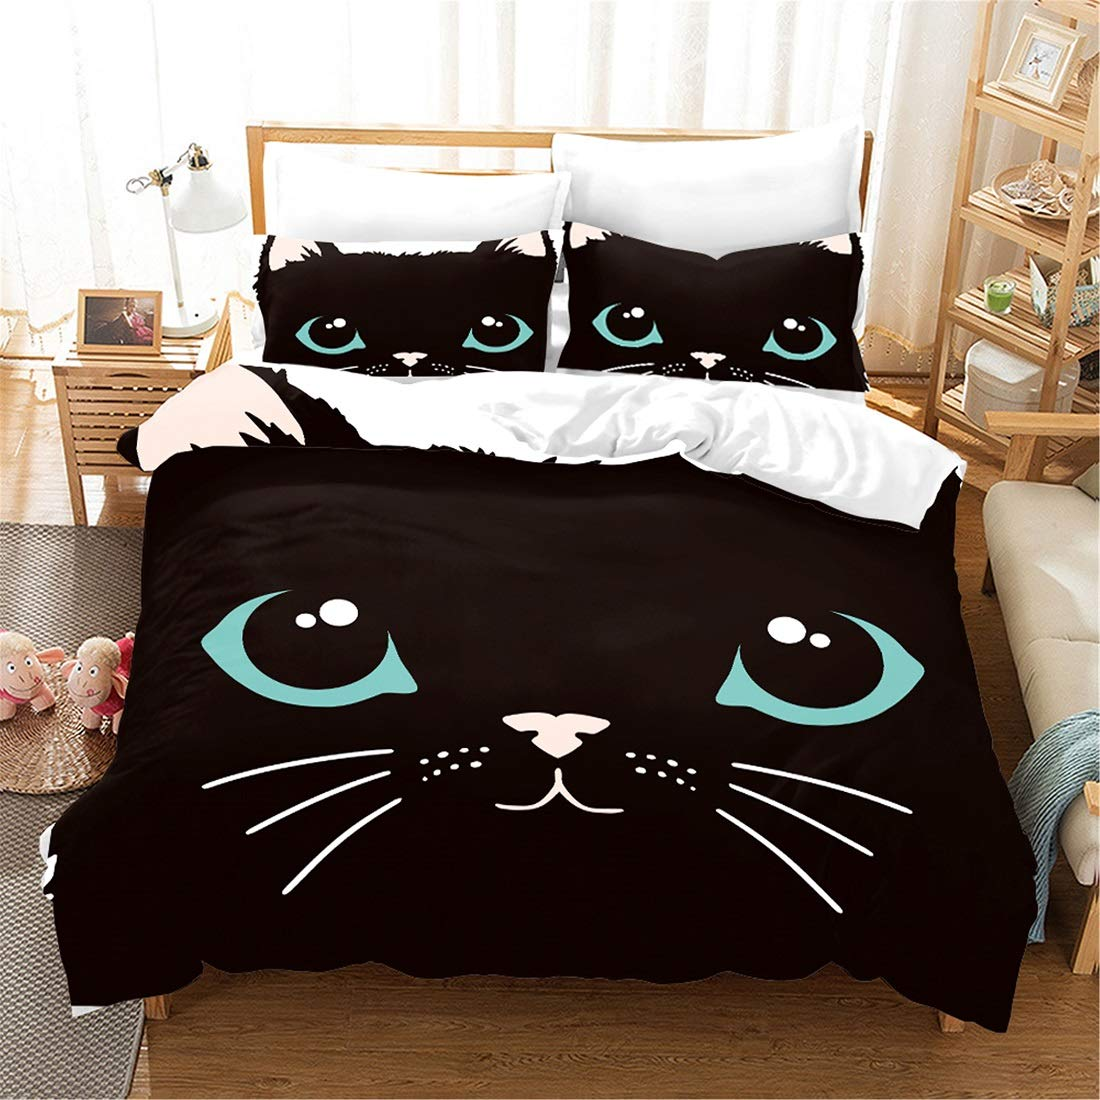 PATATINO MIO Cats Bedding Set Full Size Black Cat Blue Eyes White Ears Cartoon Design Decorative 3 Pieces Duvet Cover Set for Kids Boys Girls 1 Duvet Cover 2 Pillow Sham No Comforter